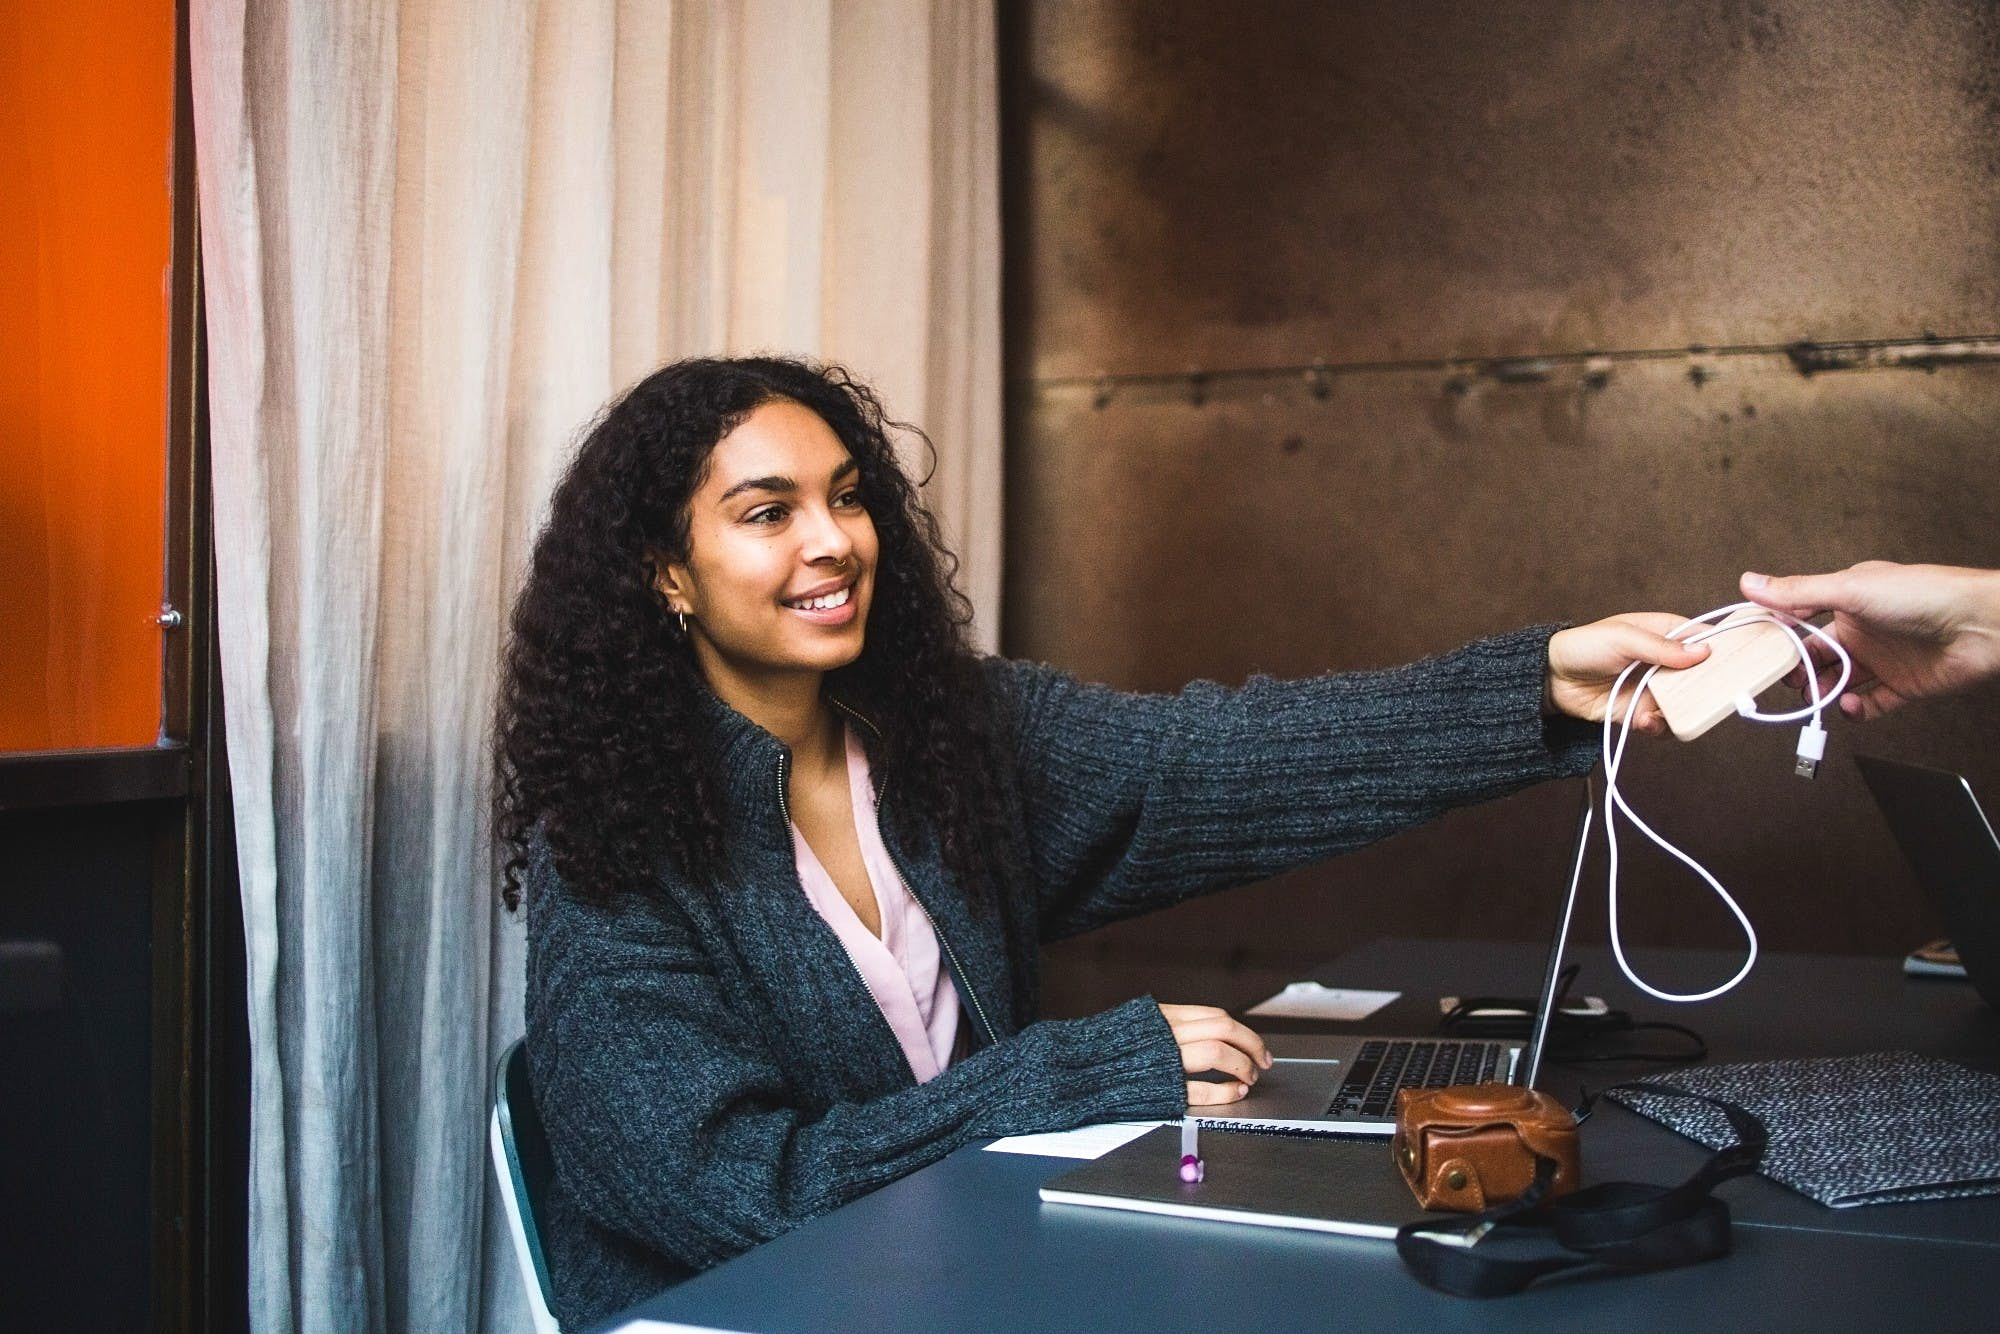 Hackers warn travellers never to borrow a charging cable from someone else - Lonely Planet